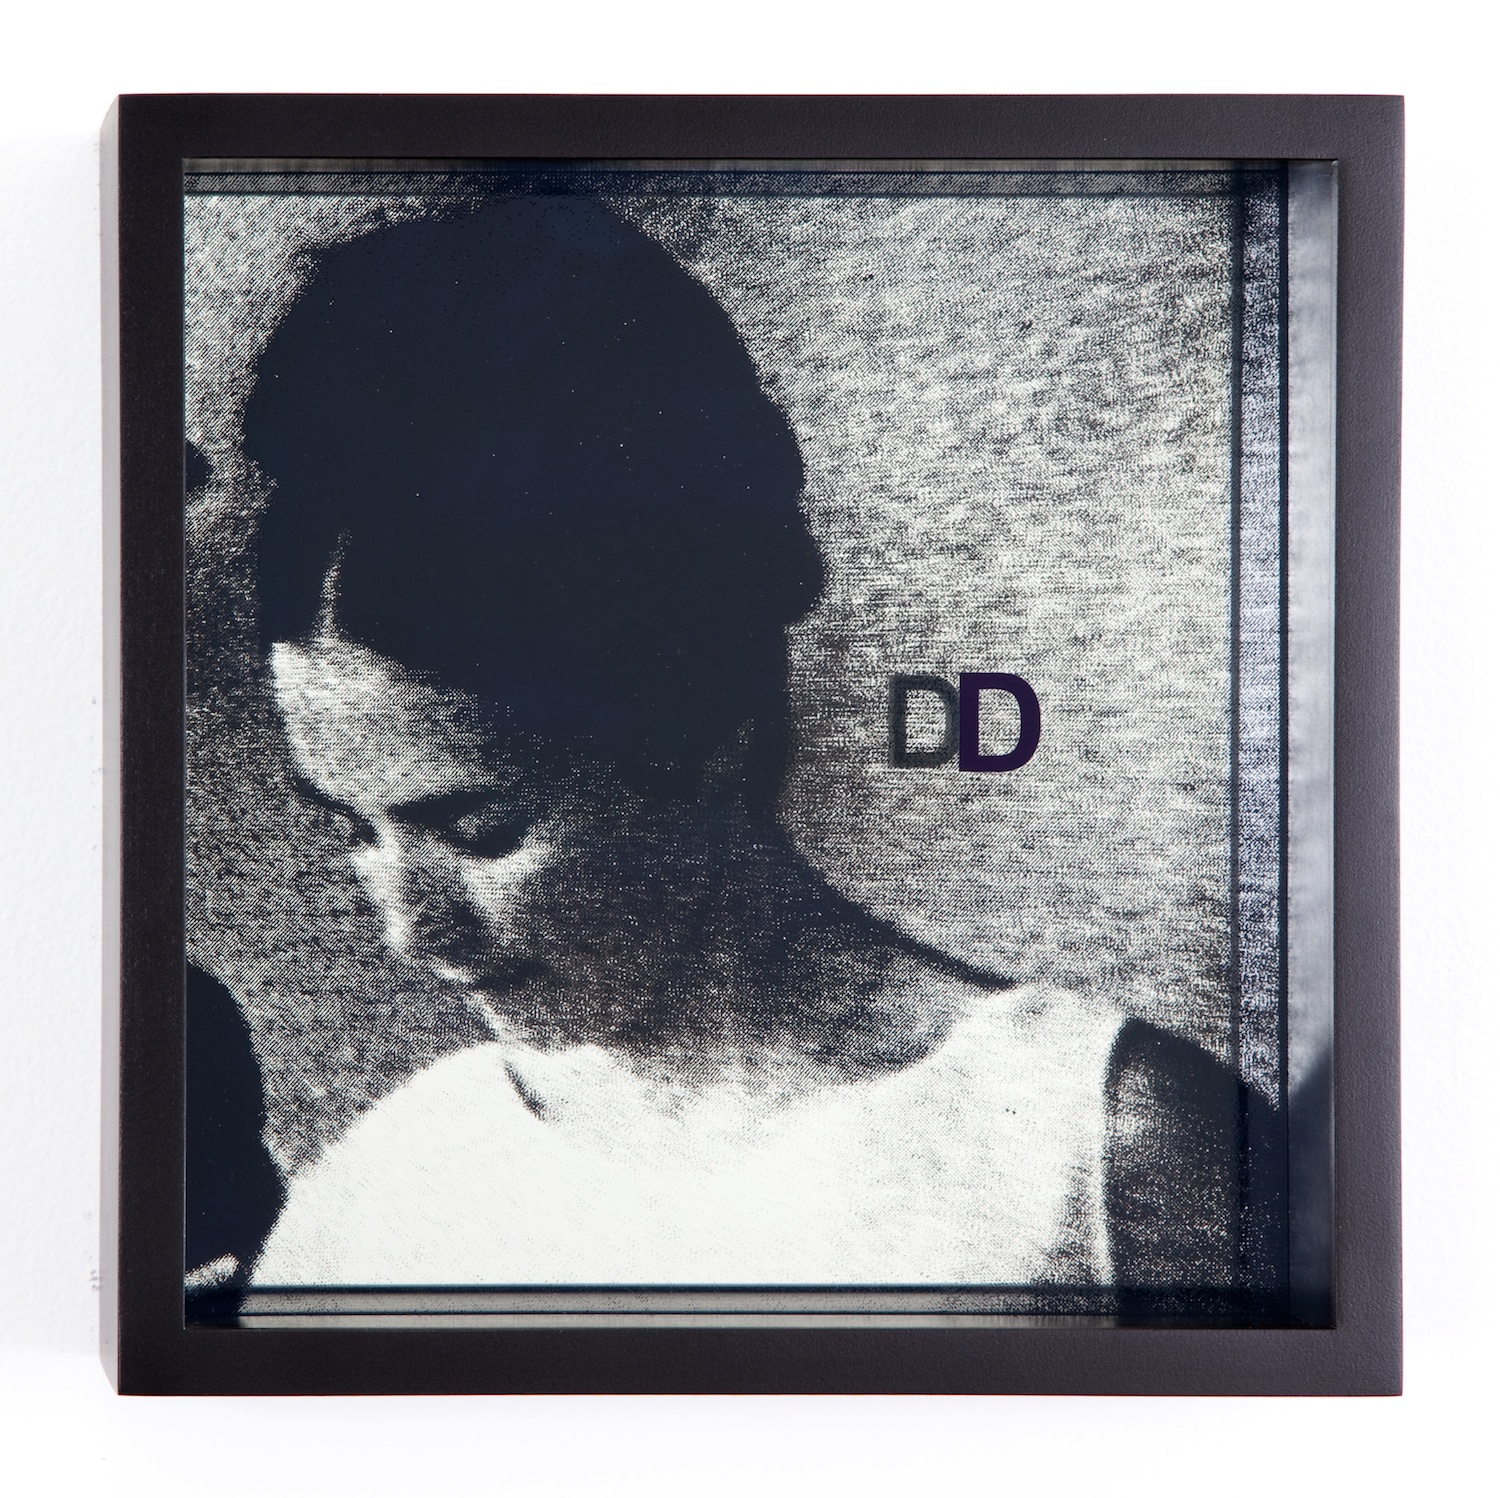 Adam Pendleton  System of Display, D (AROUND/Jean-Marie Straub, Not Reconciled, Or Only Violence helps where violence rules, 1965)  2011 Silkscreen on glass and mirror 9 ⅞h x 9 ⅞w x 3d in AdamP007